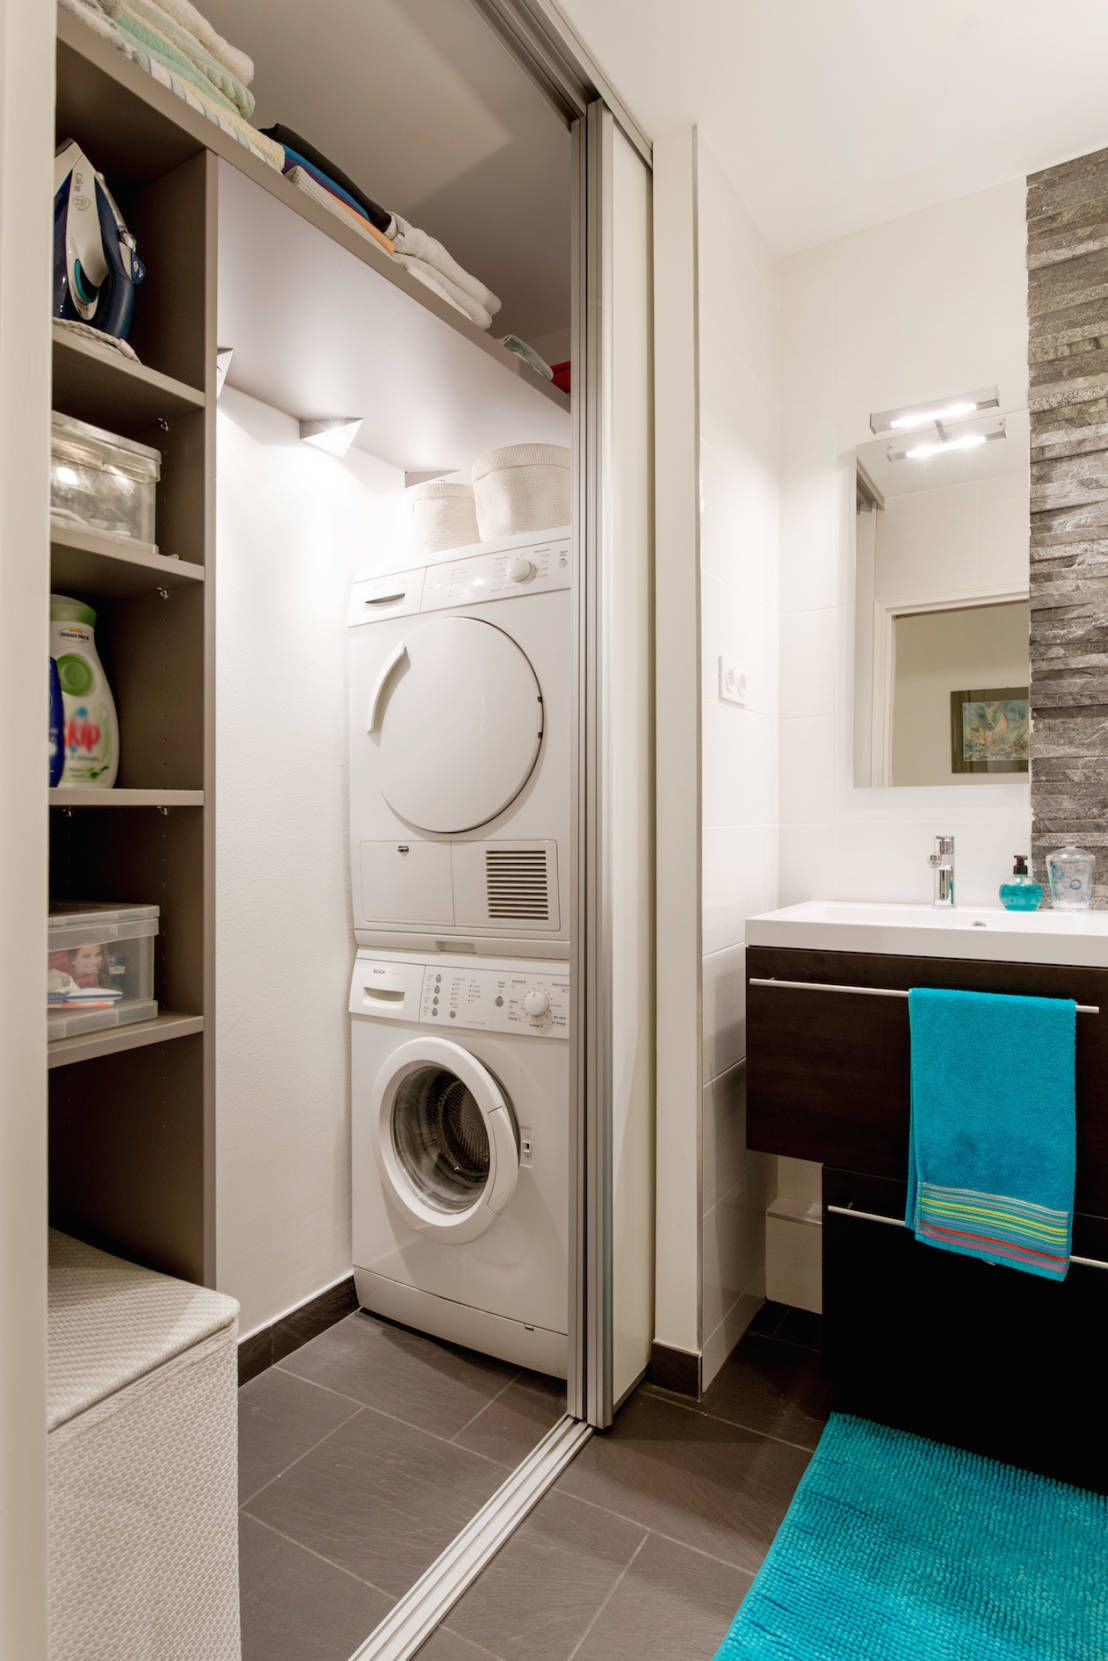 Aménager une buanderie | Laundry, Laundry rooms and Room